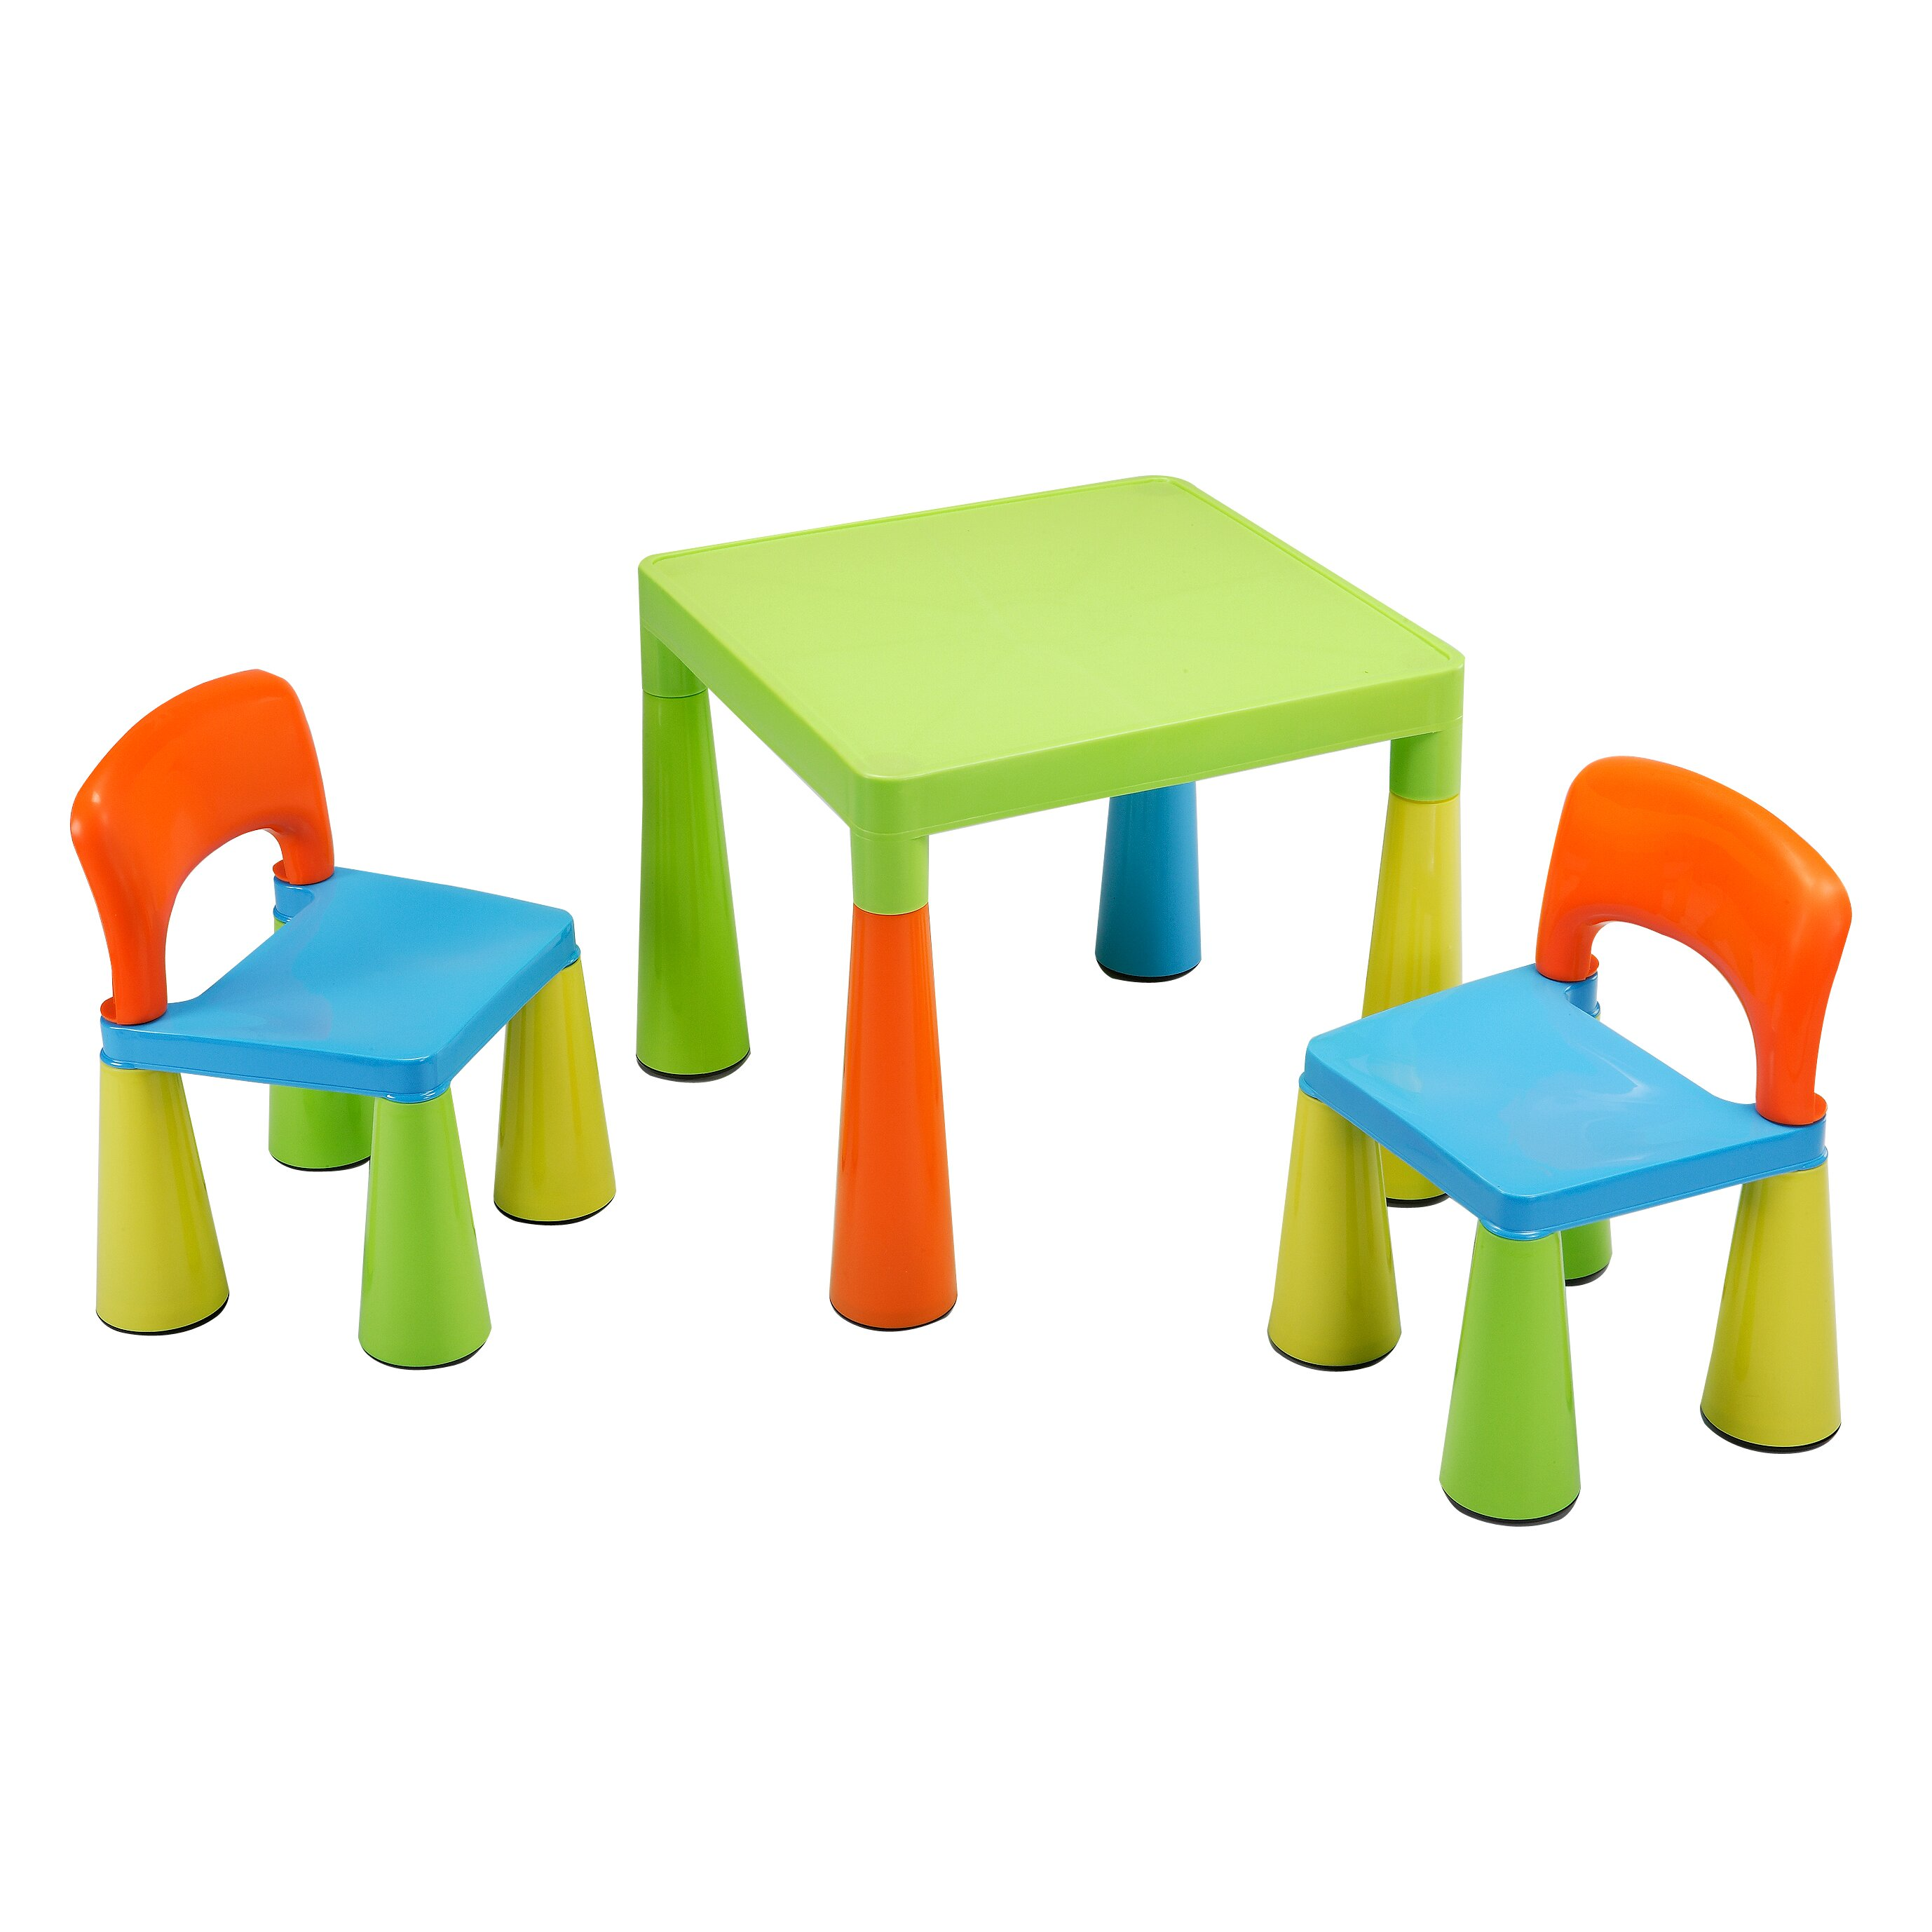 Childrens Toy Table And Chairs Childrens Table Chairs Kids Furniture ...